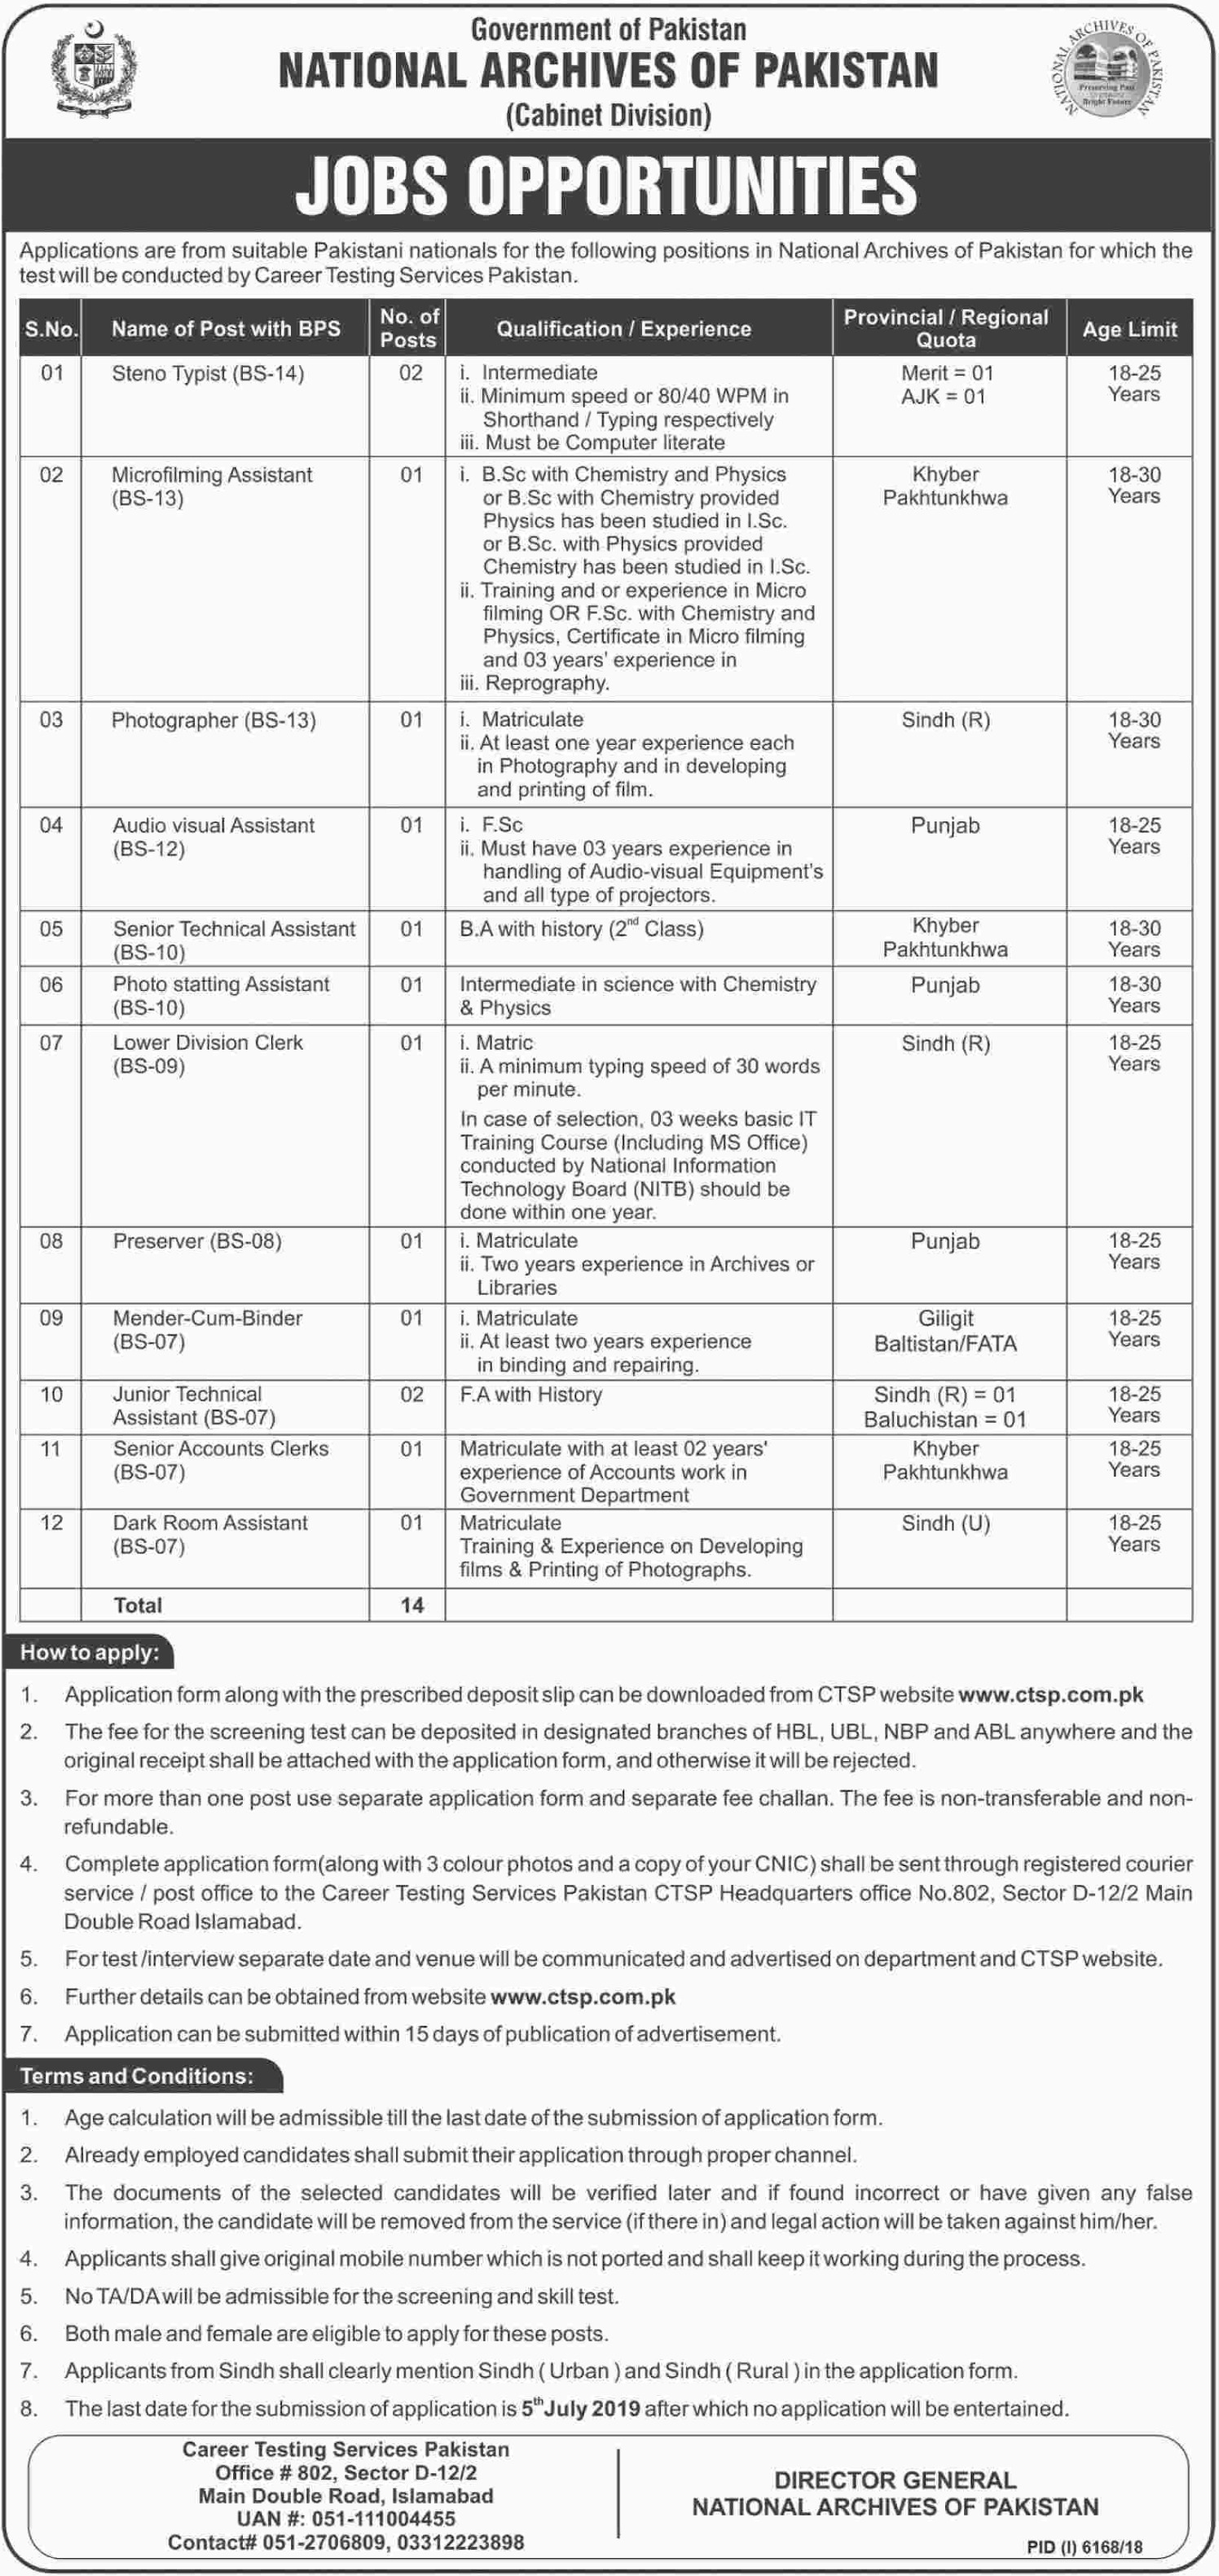 National Archives of Pakistan Jobs 2019 Apply through CTSP